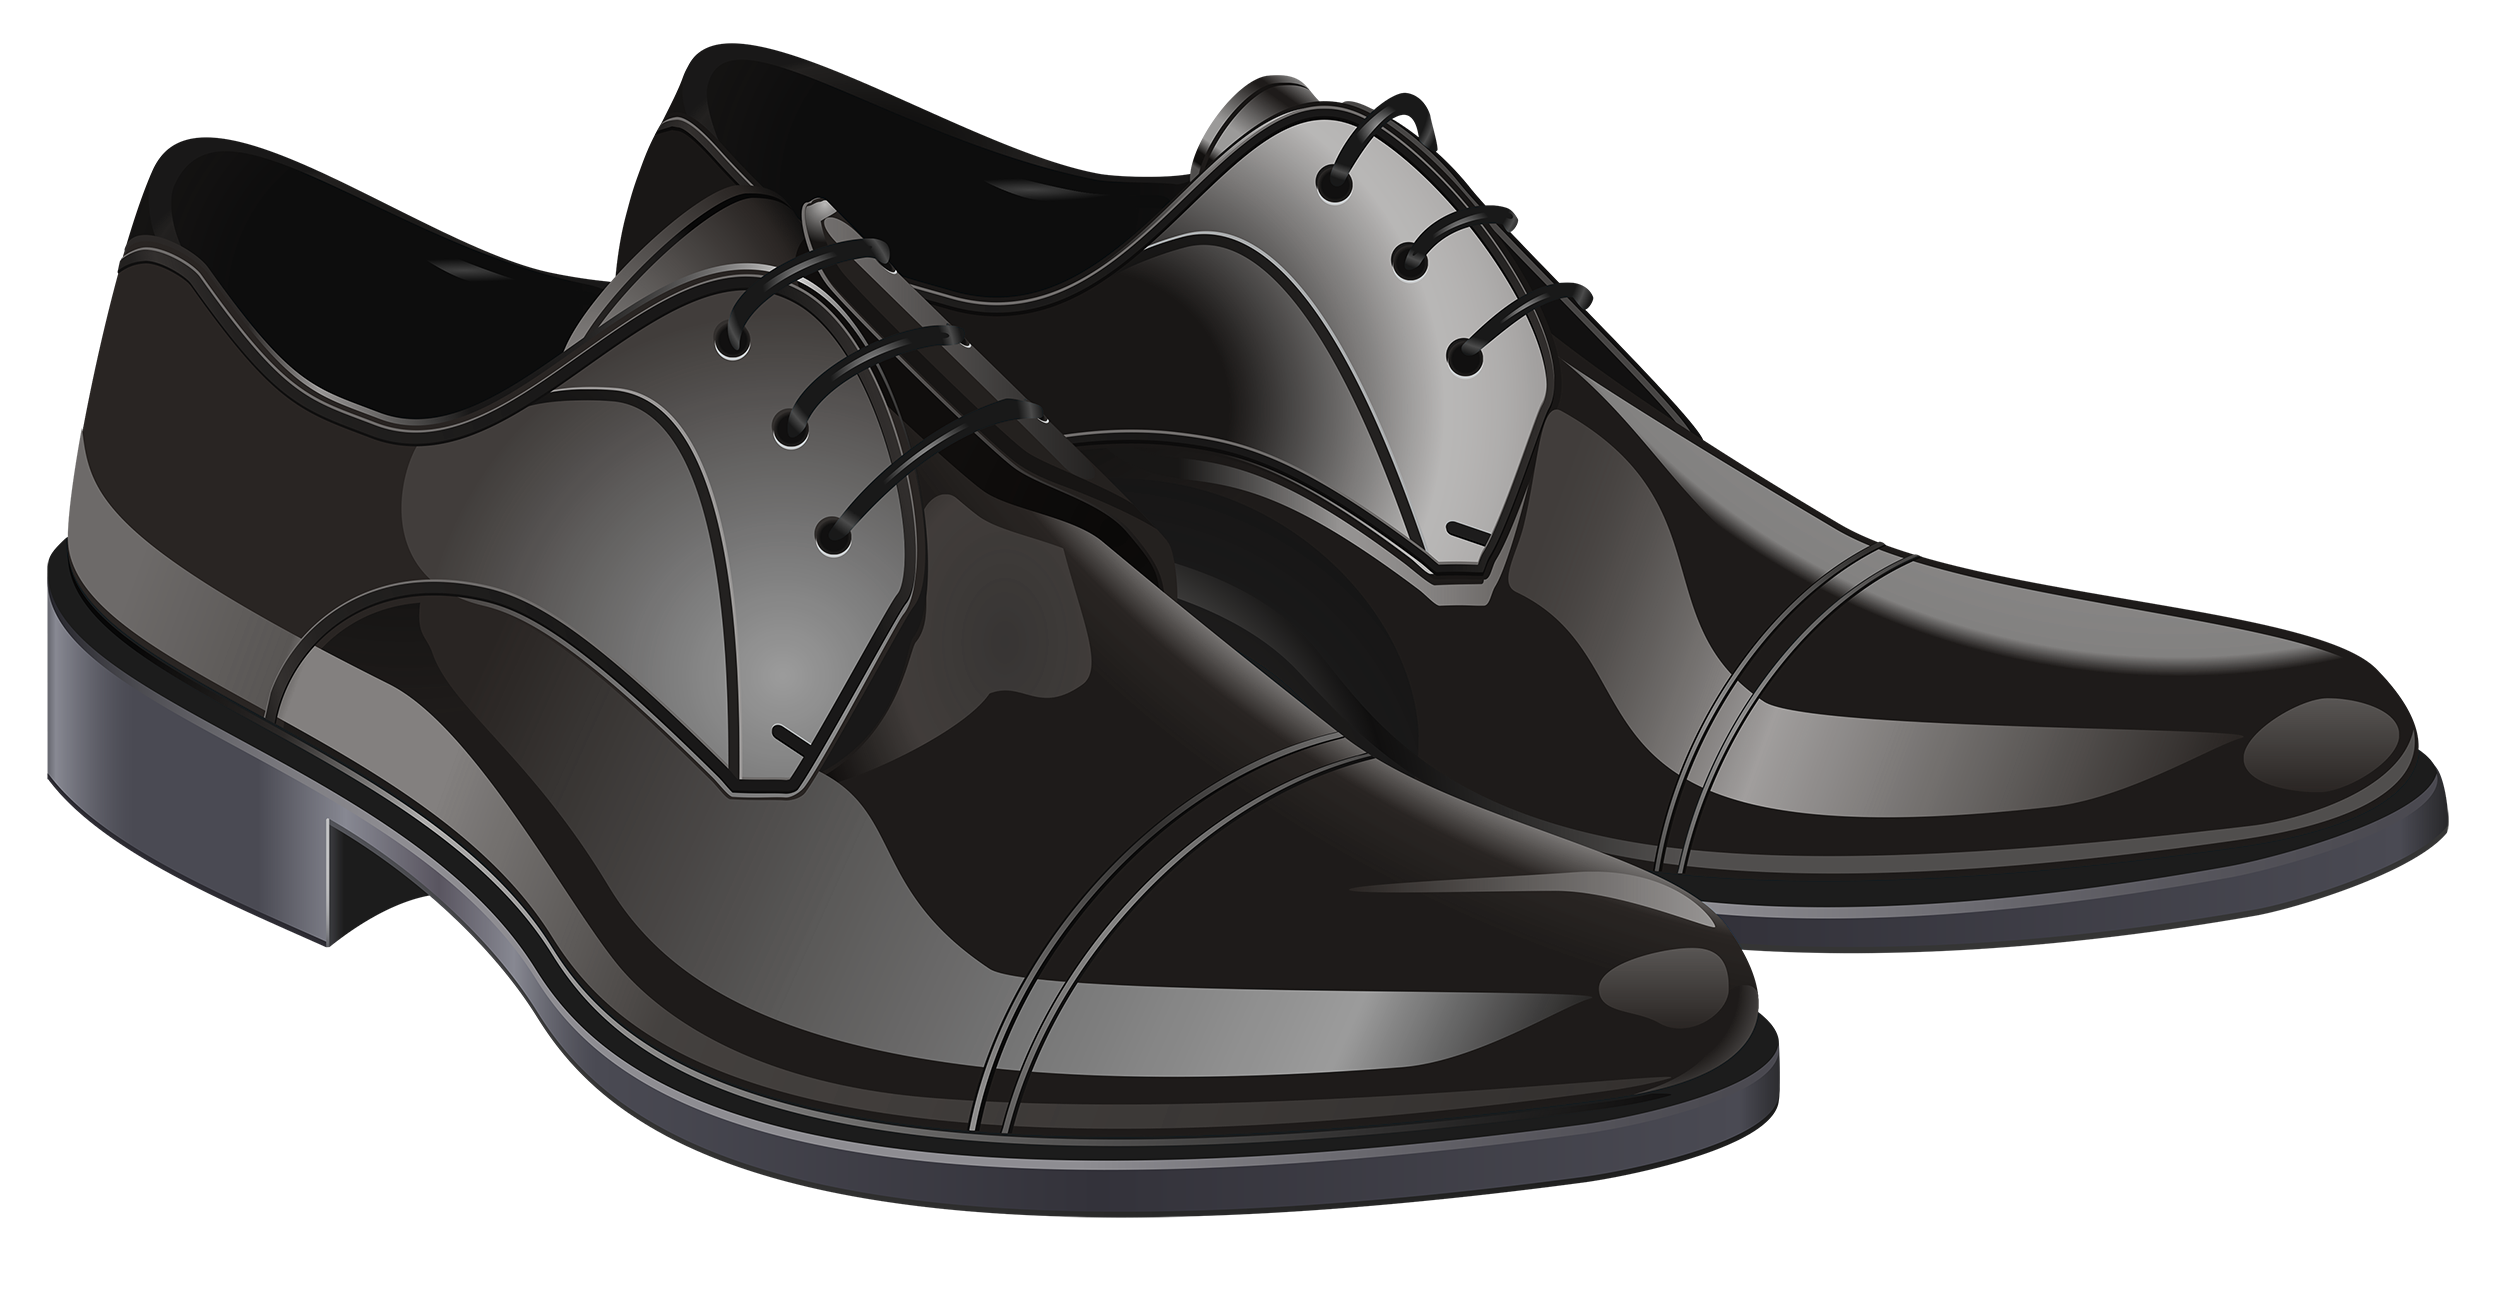 Shoes that cost a lot of money clipart jpg royalty free stock Black Elegant Men Shoes PNG Clipart - Best WEB Clipart jpg royalty free stock